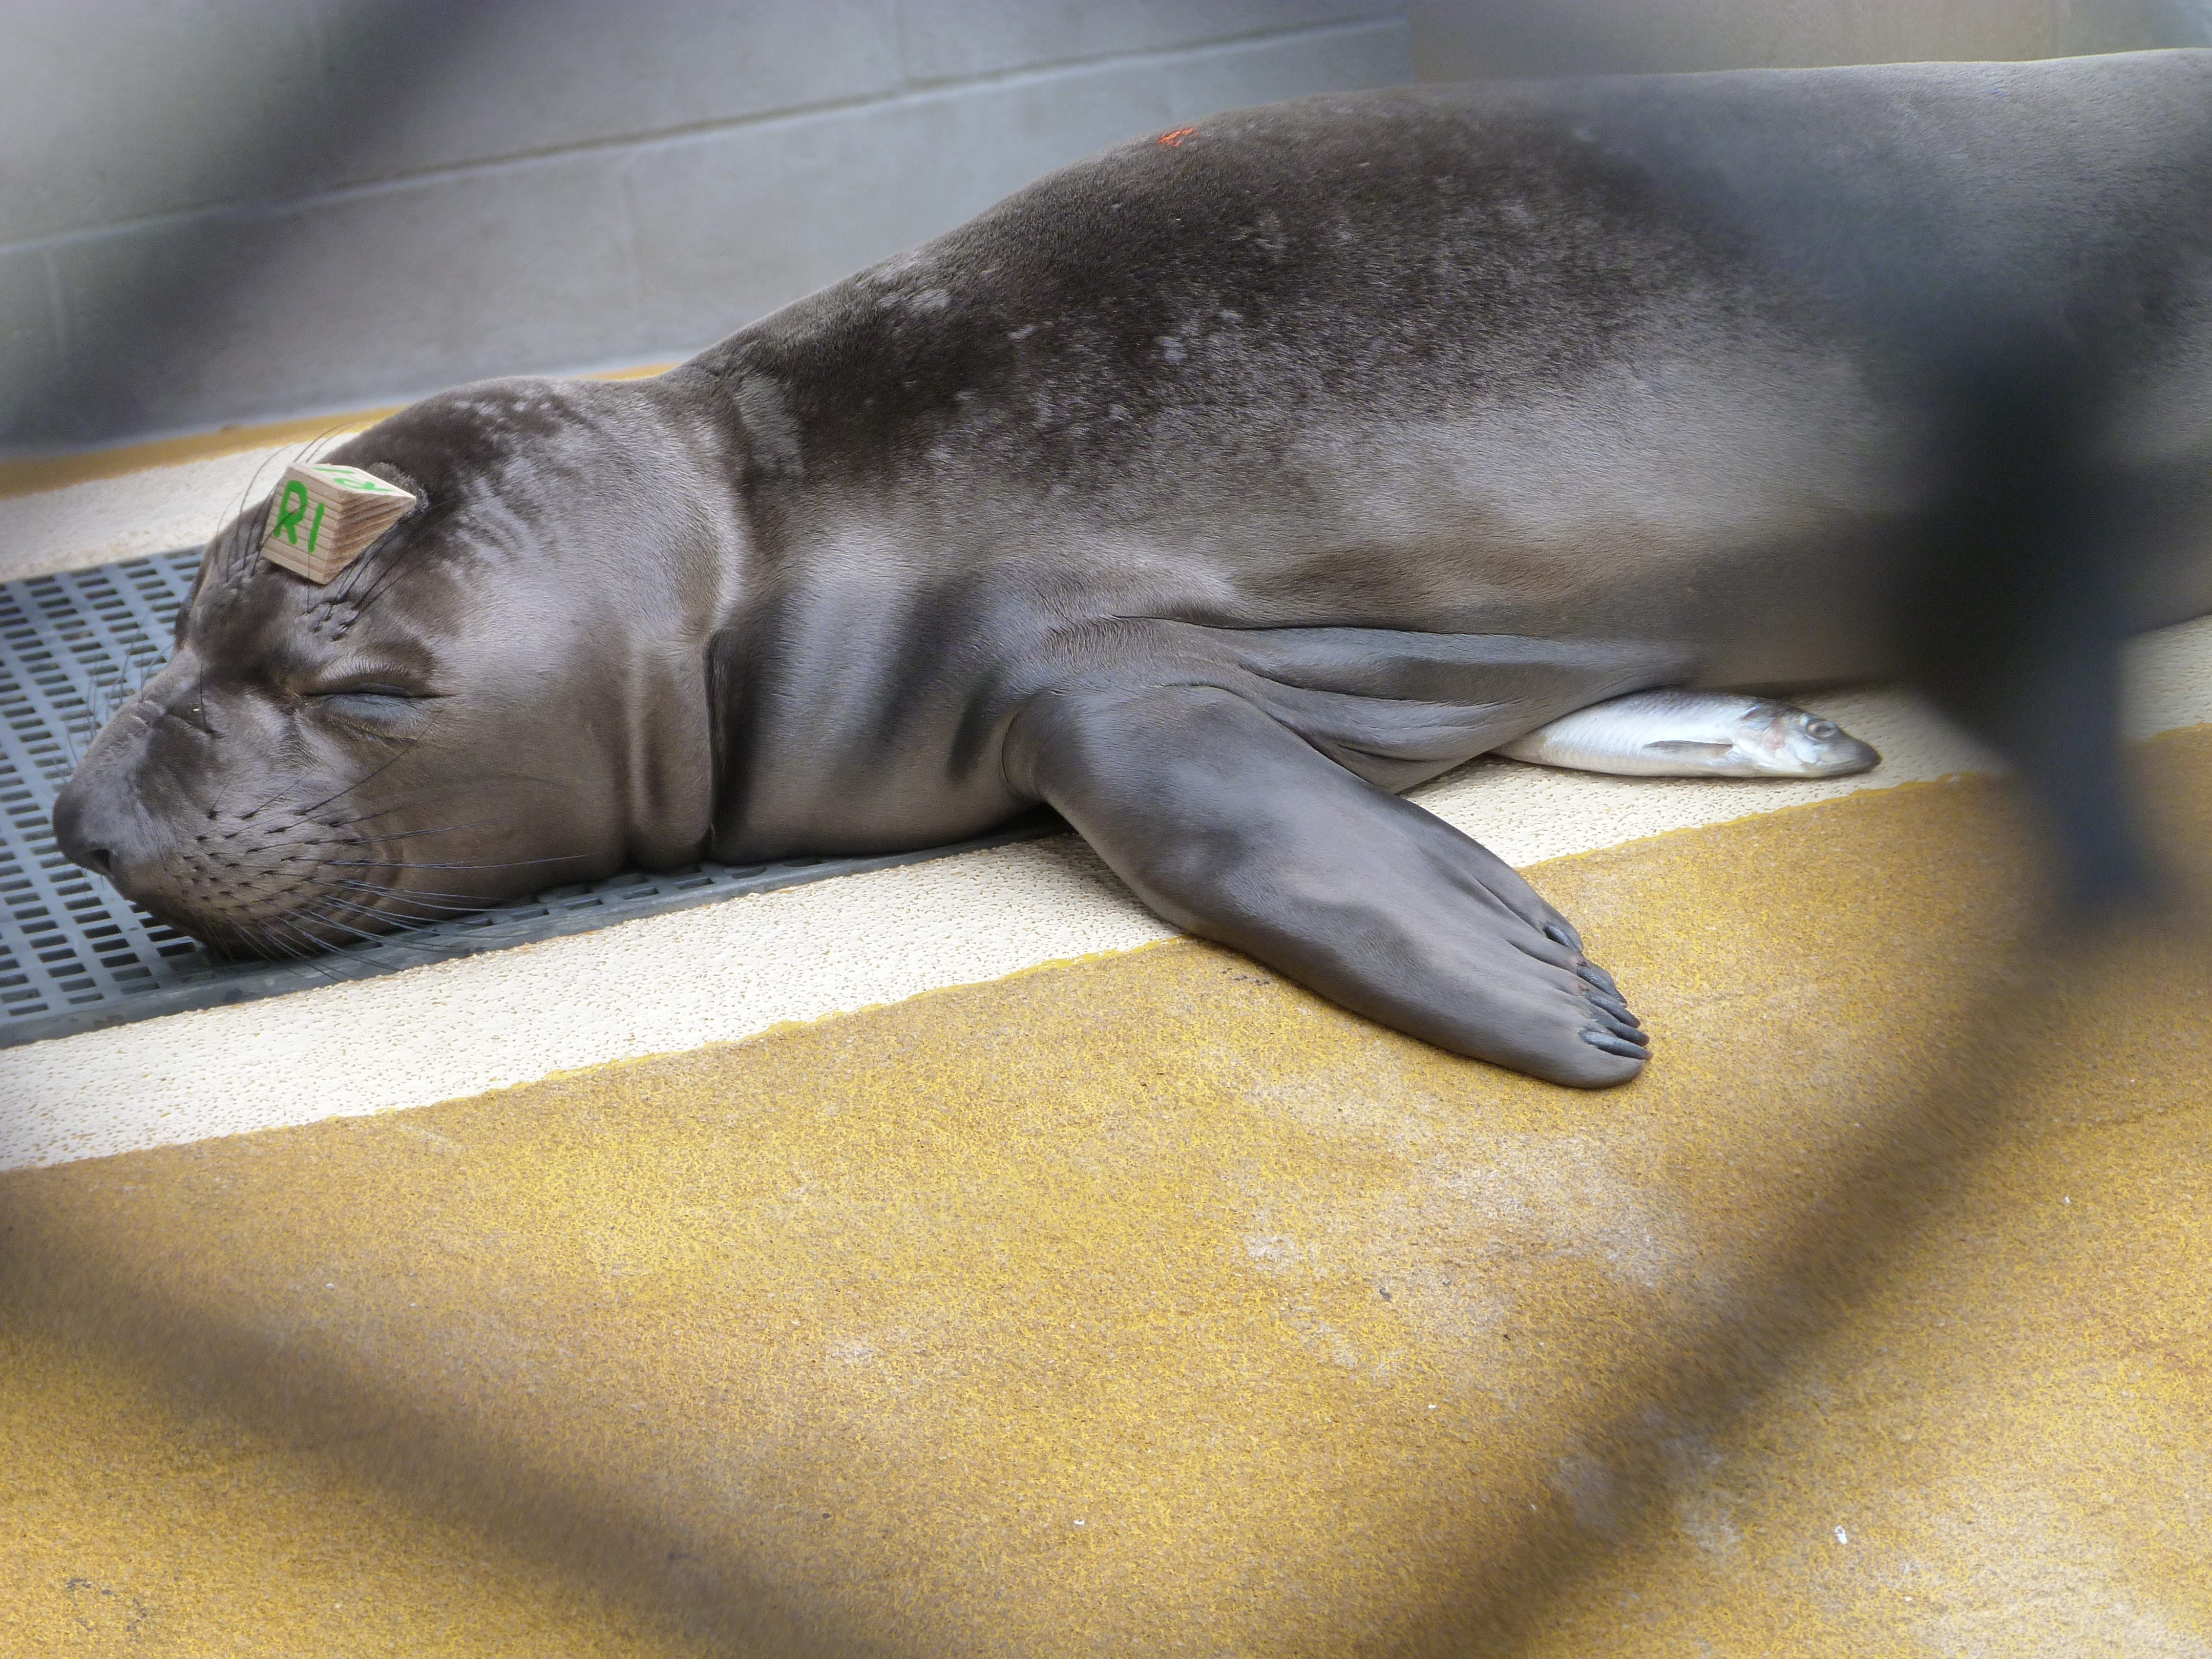 Cheesy, an elephant seal, takes a snooze in a pen at The Marine Mammal Center.